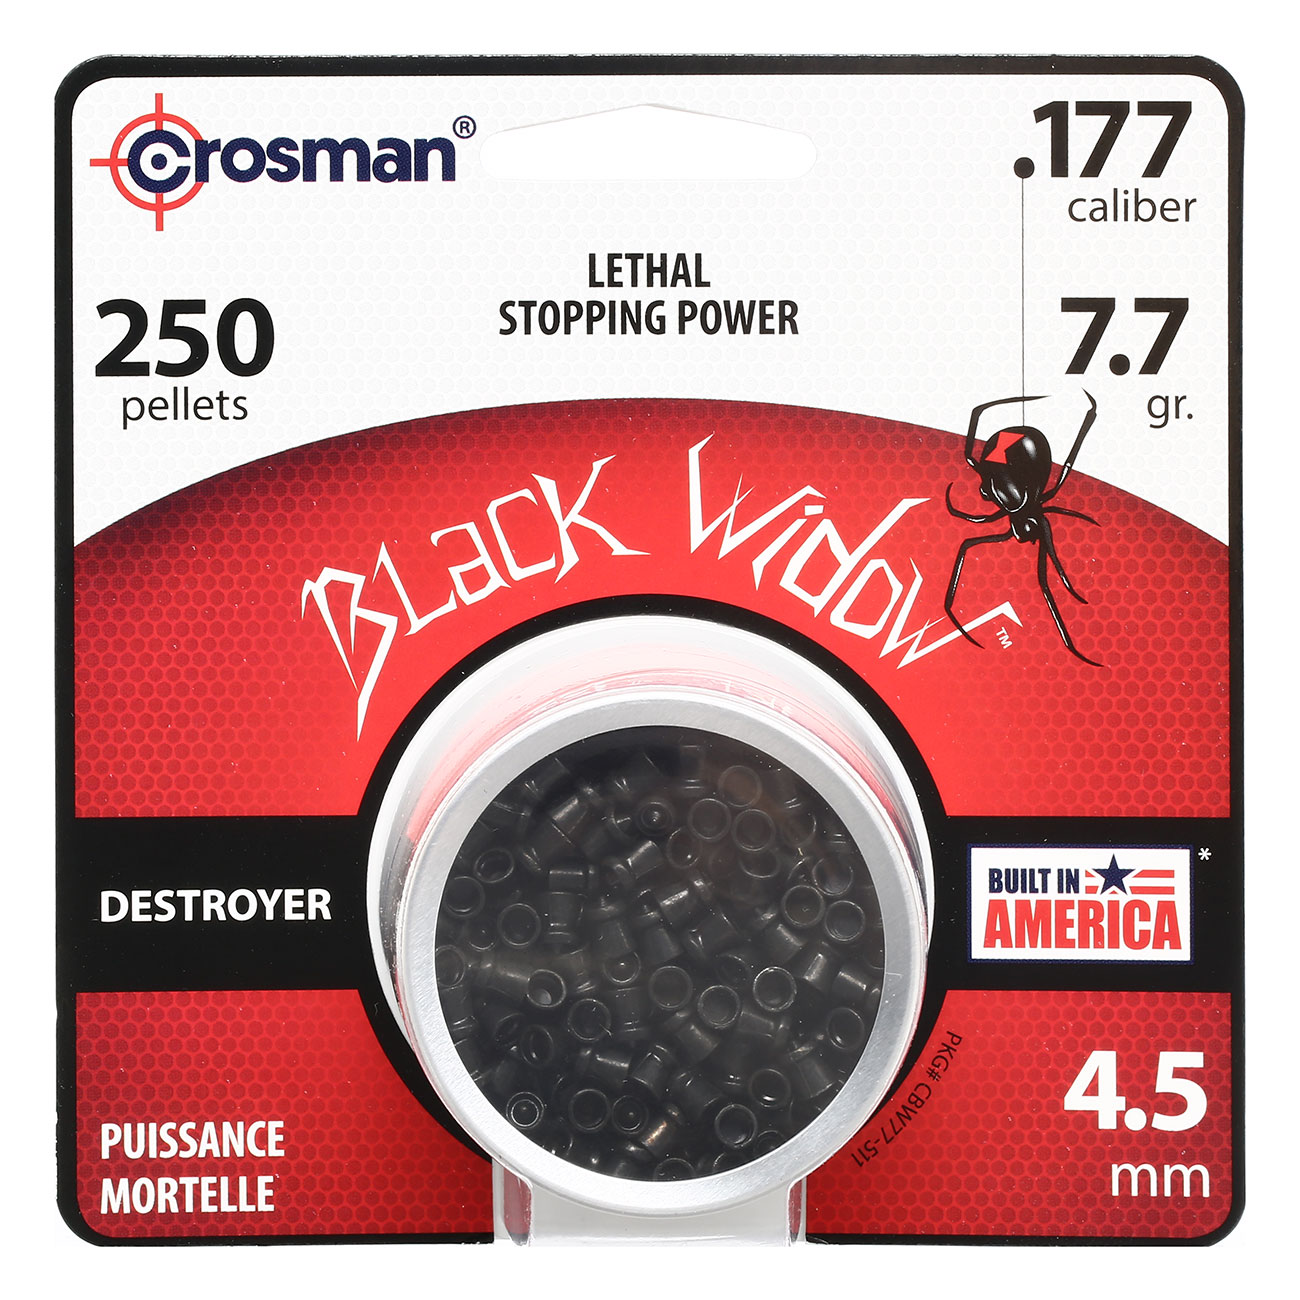 Crosman Black Widow Spitzkopf-Diabolos Lethal Destroyer 4,5mm 250 Stück 0